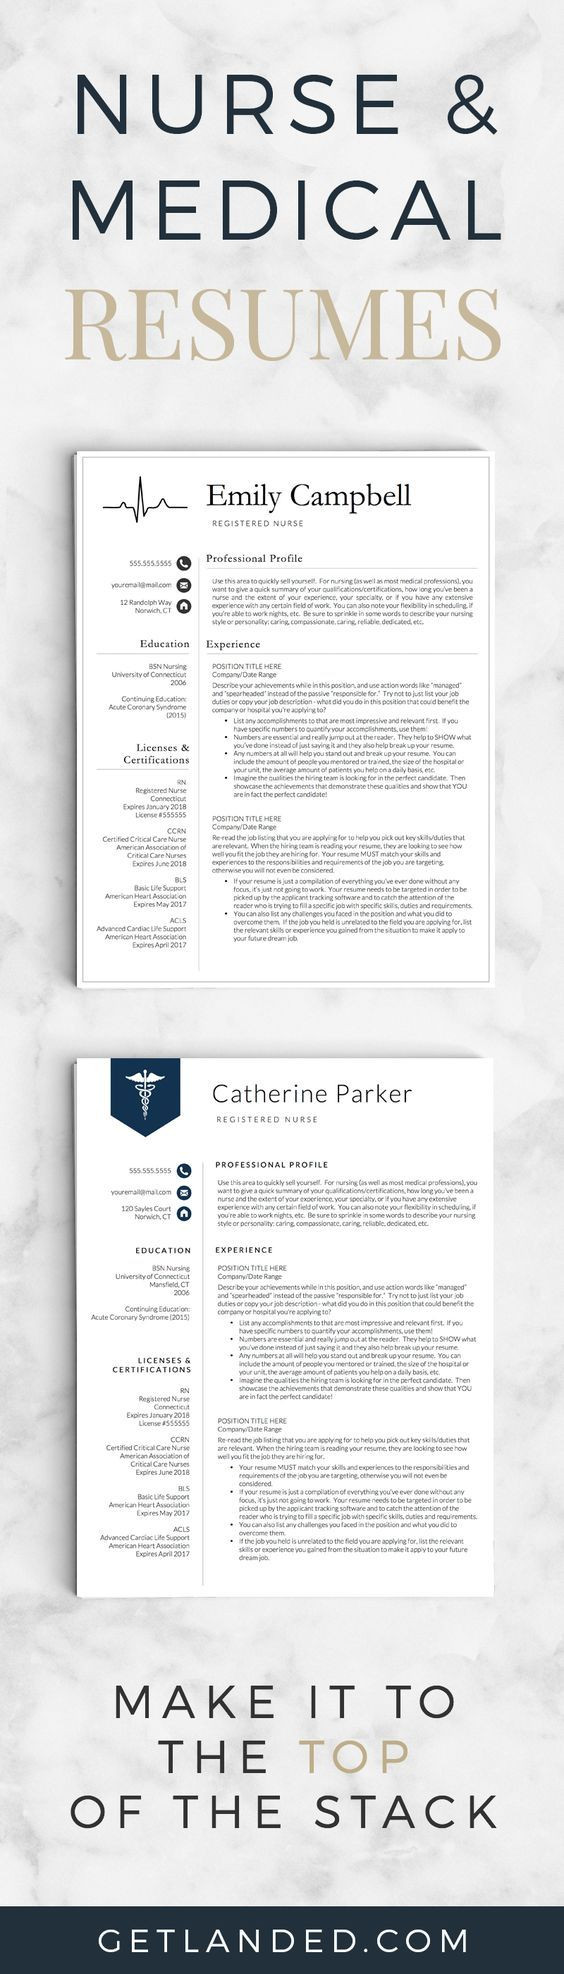 top ideas about professional nurse professional nurse resume templates medical resumes resume templates specifically designed for the nursing profession